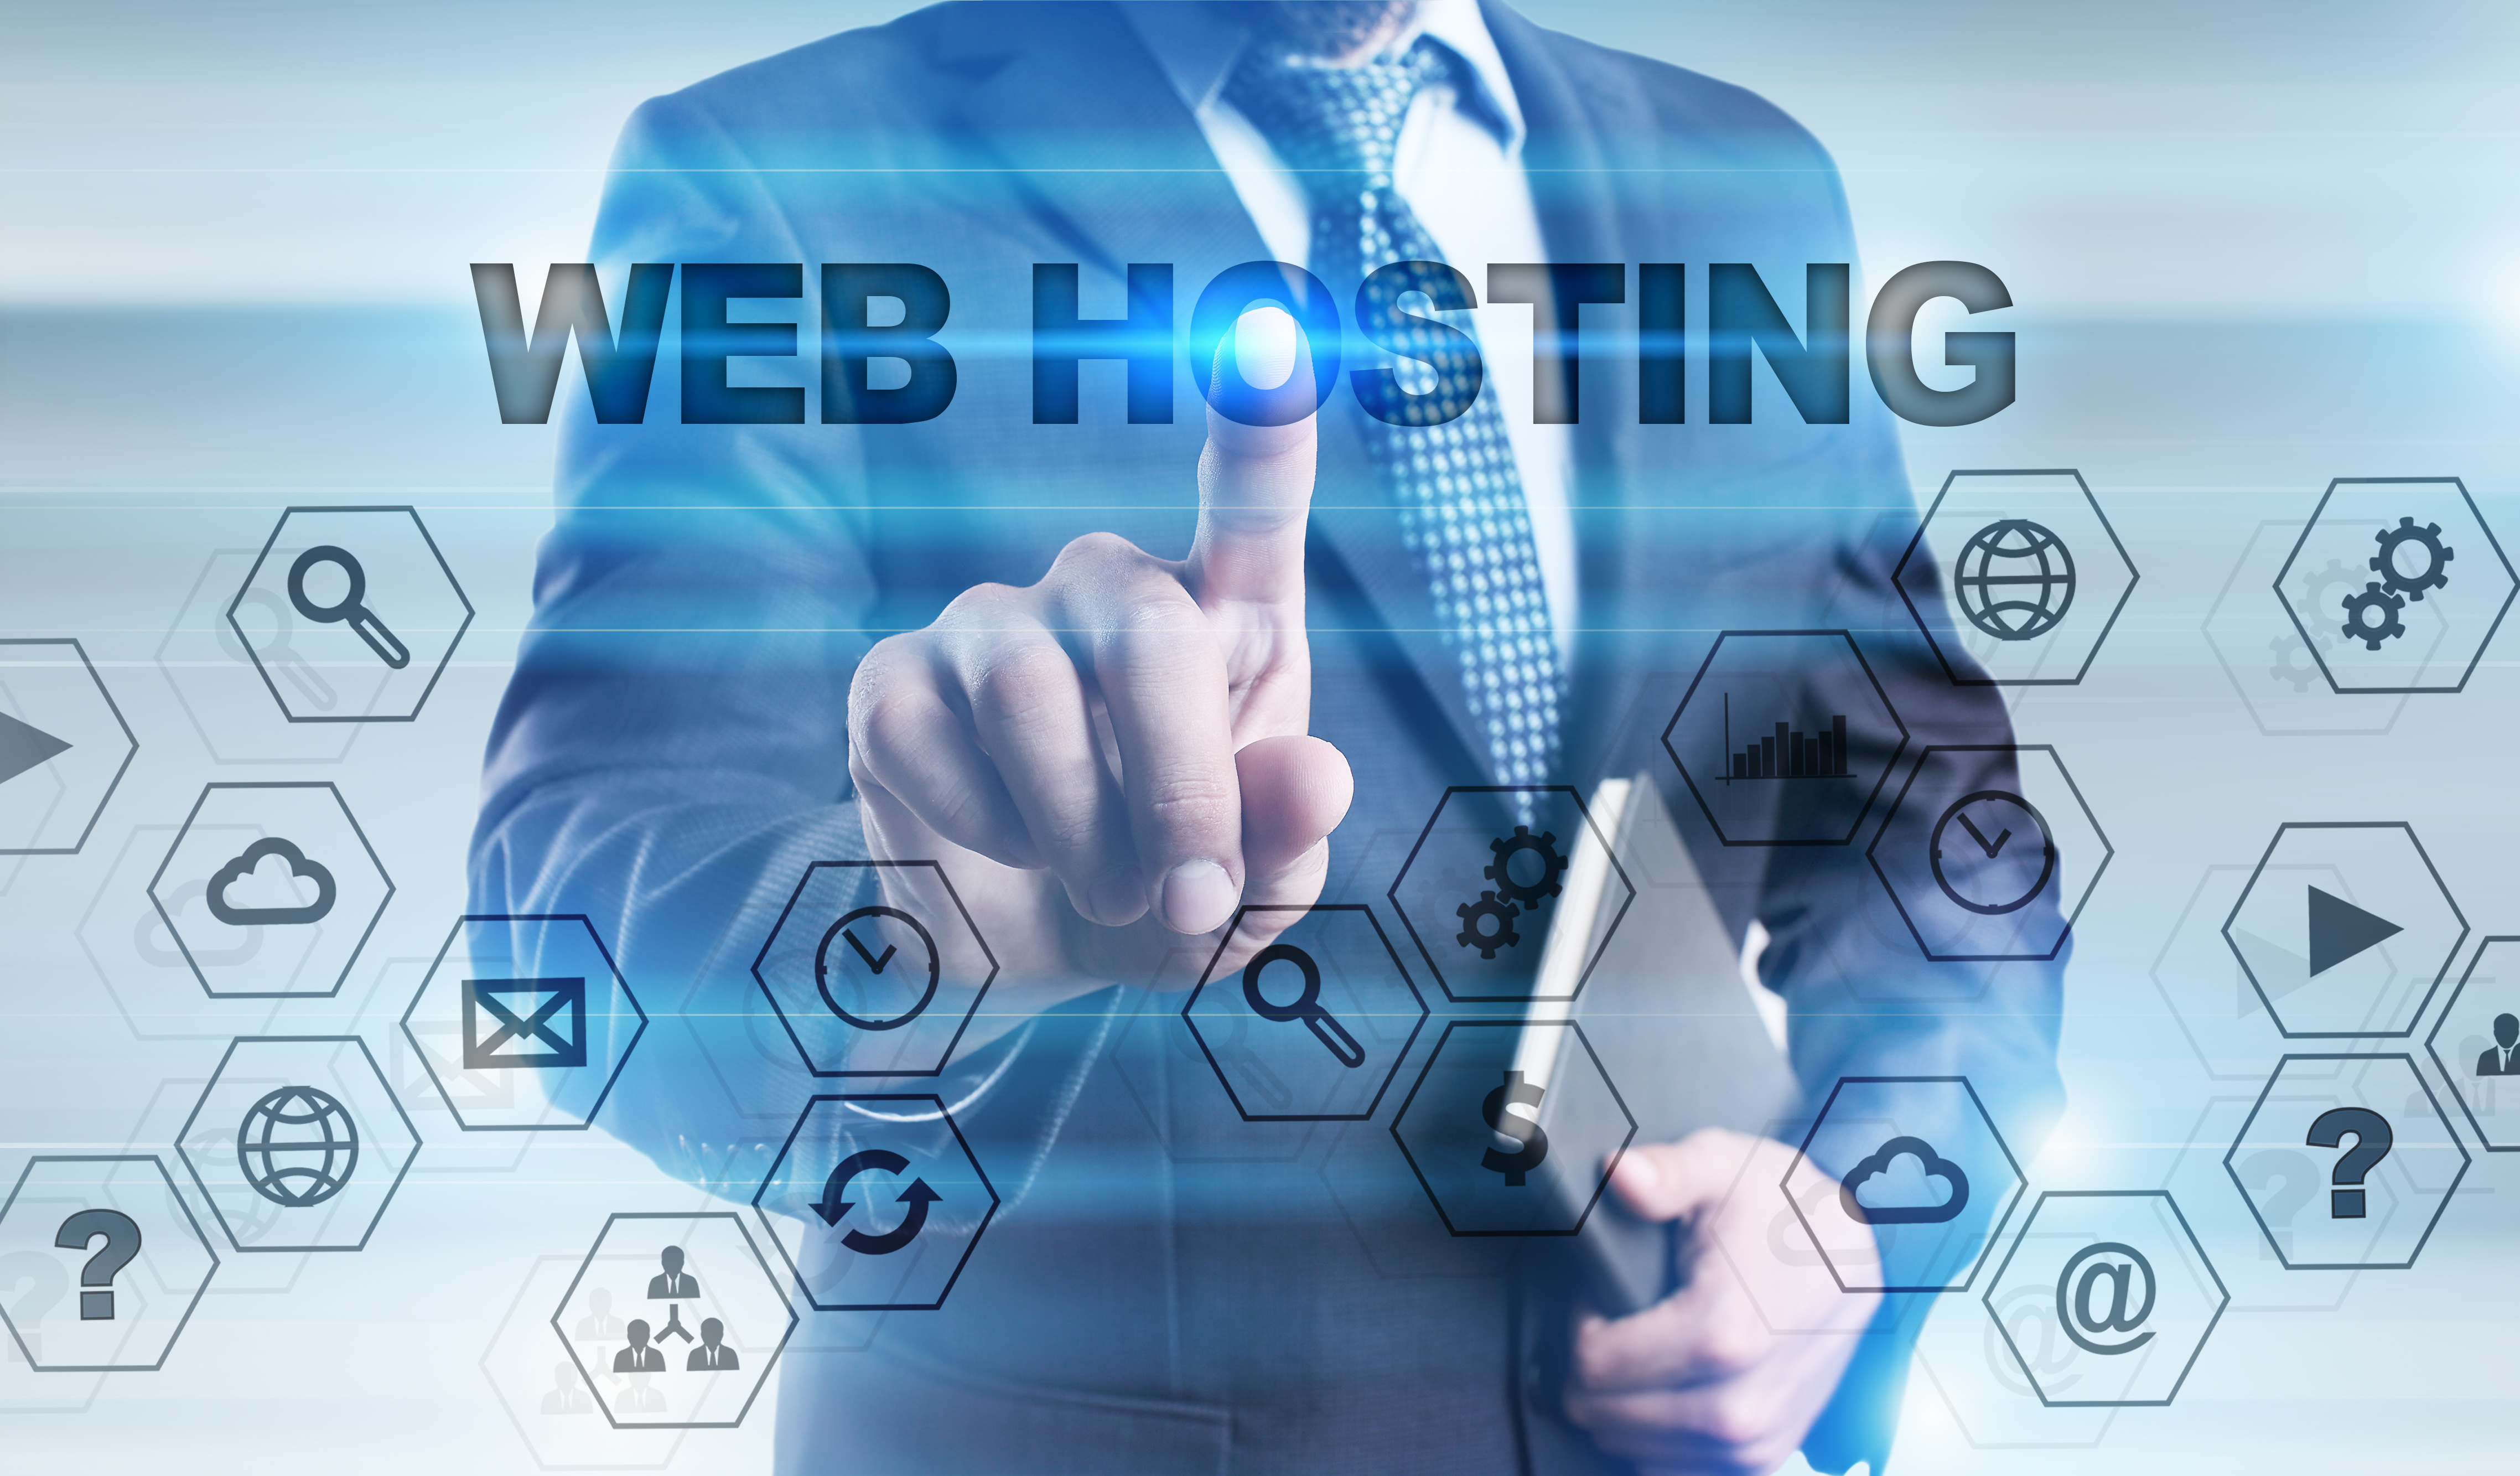 Annual Website Hosting and Maintenance Fee